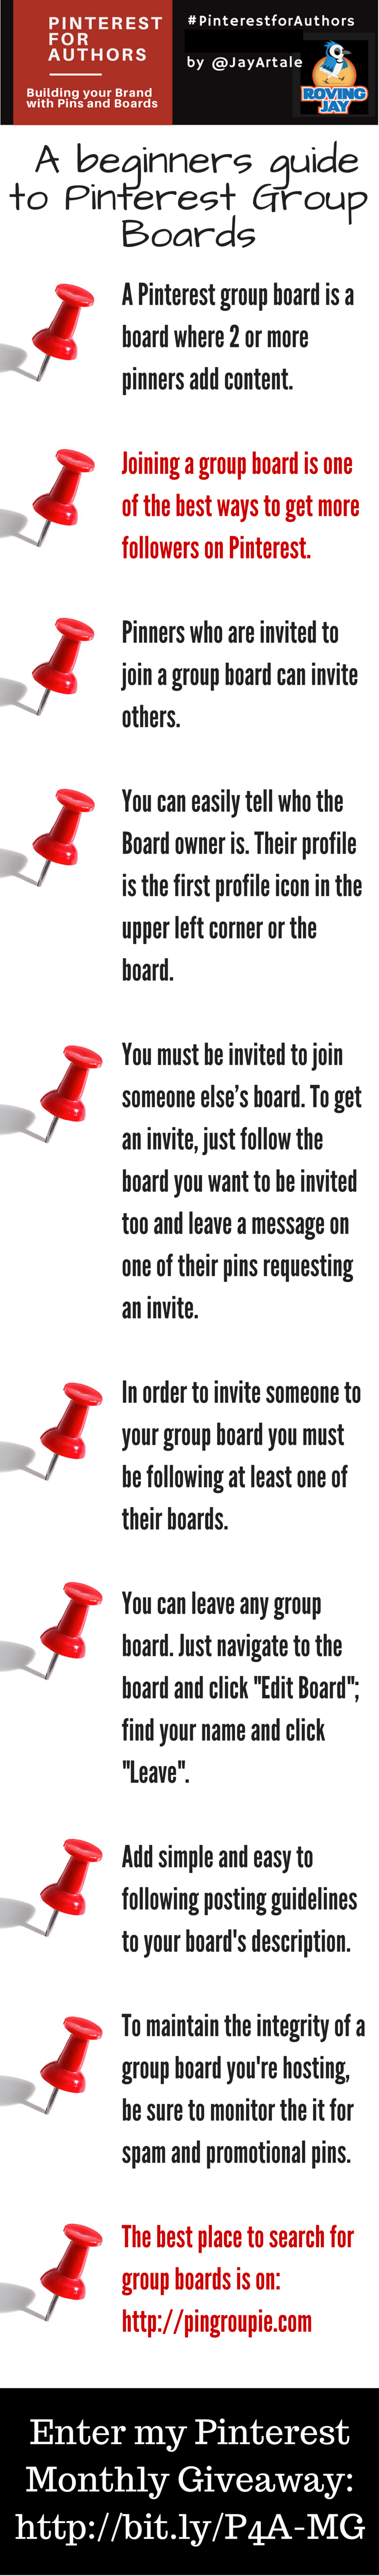 Infographic 10 Facts About Pinterest Group Boards by Jay Artale